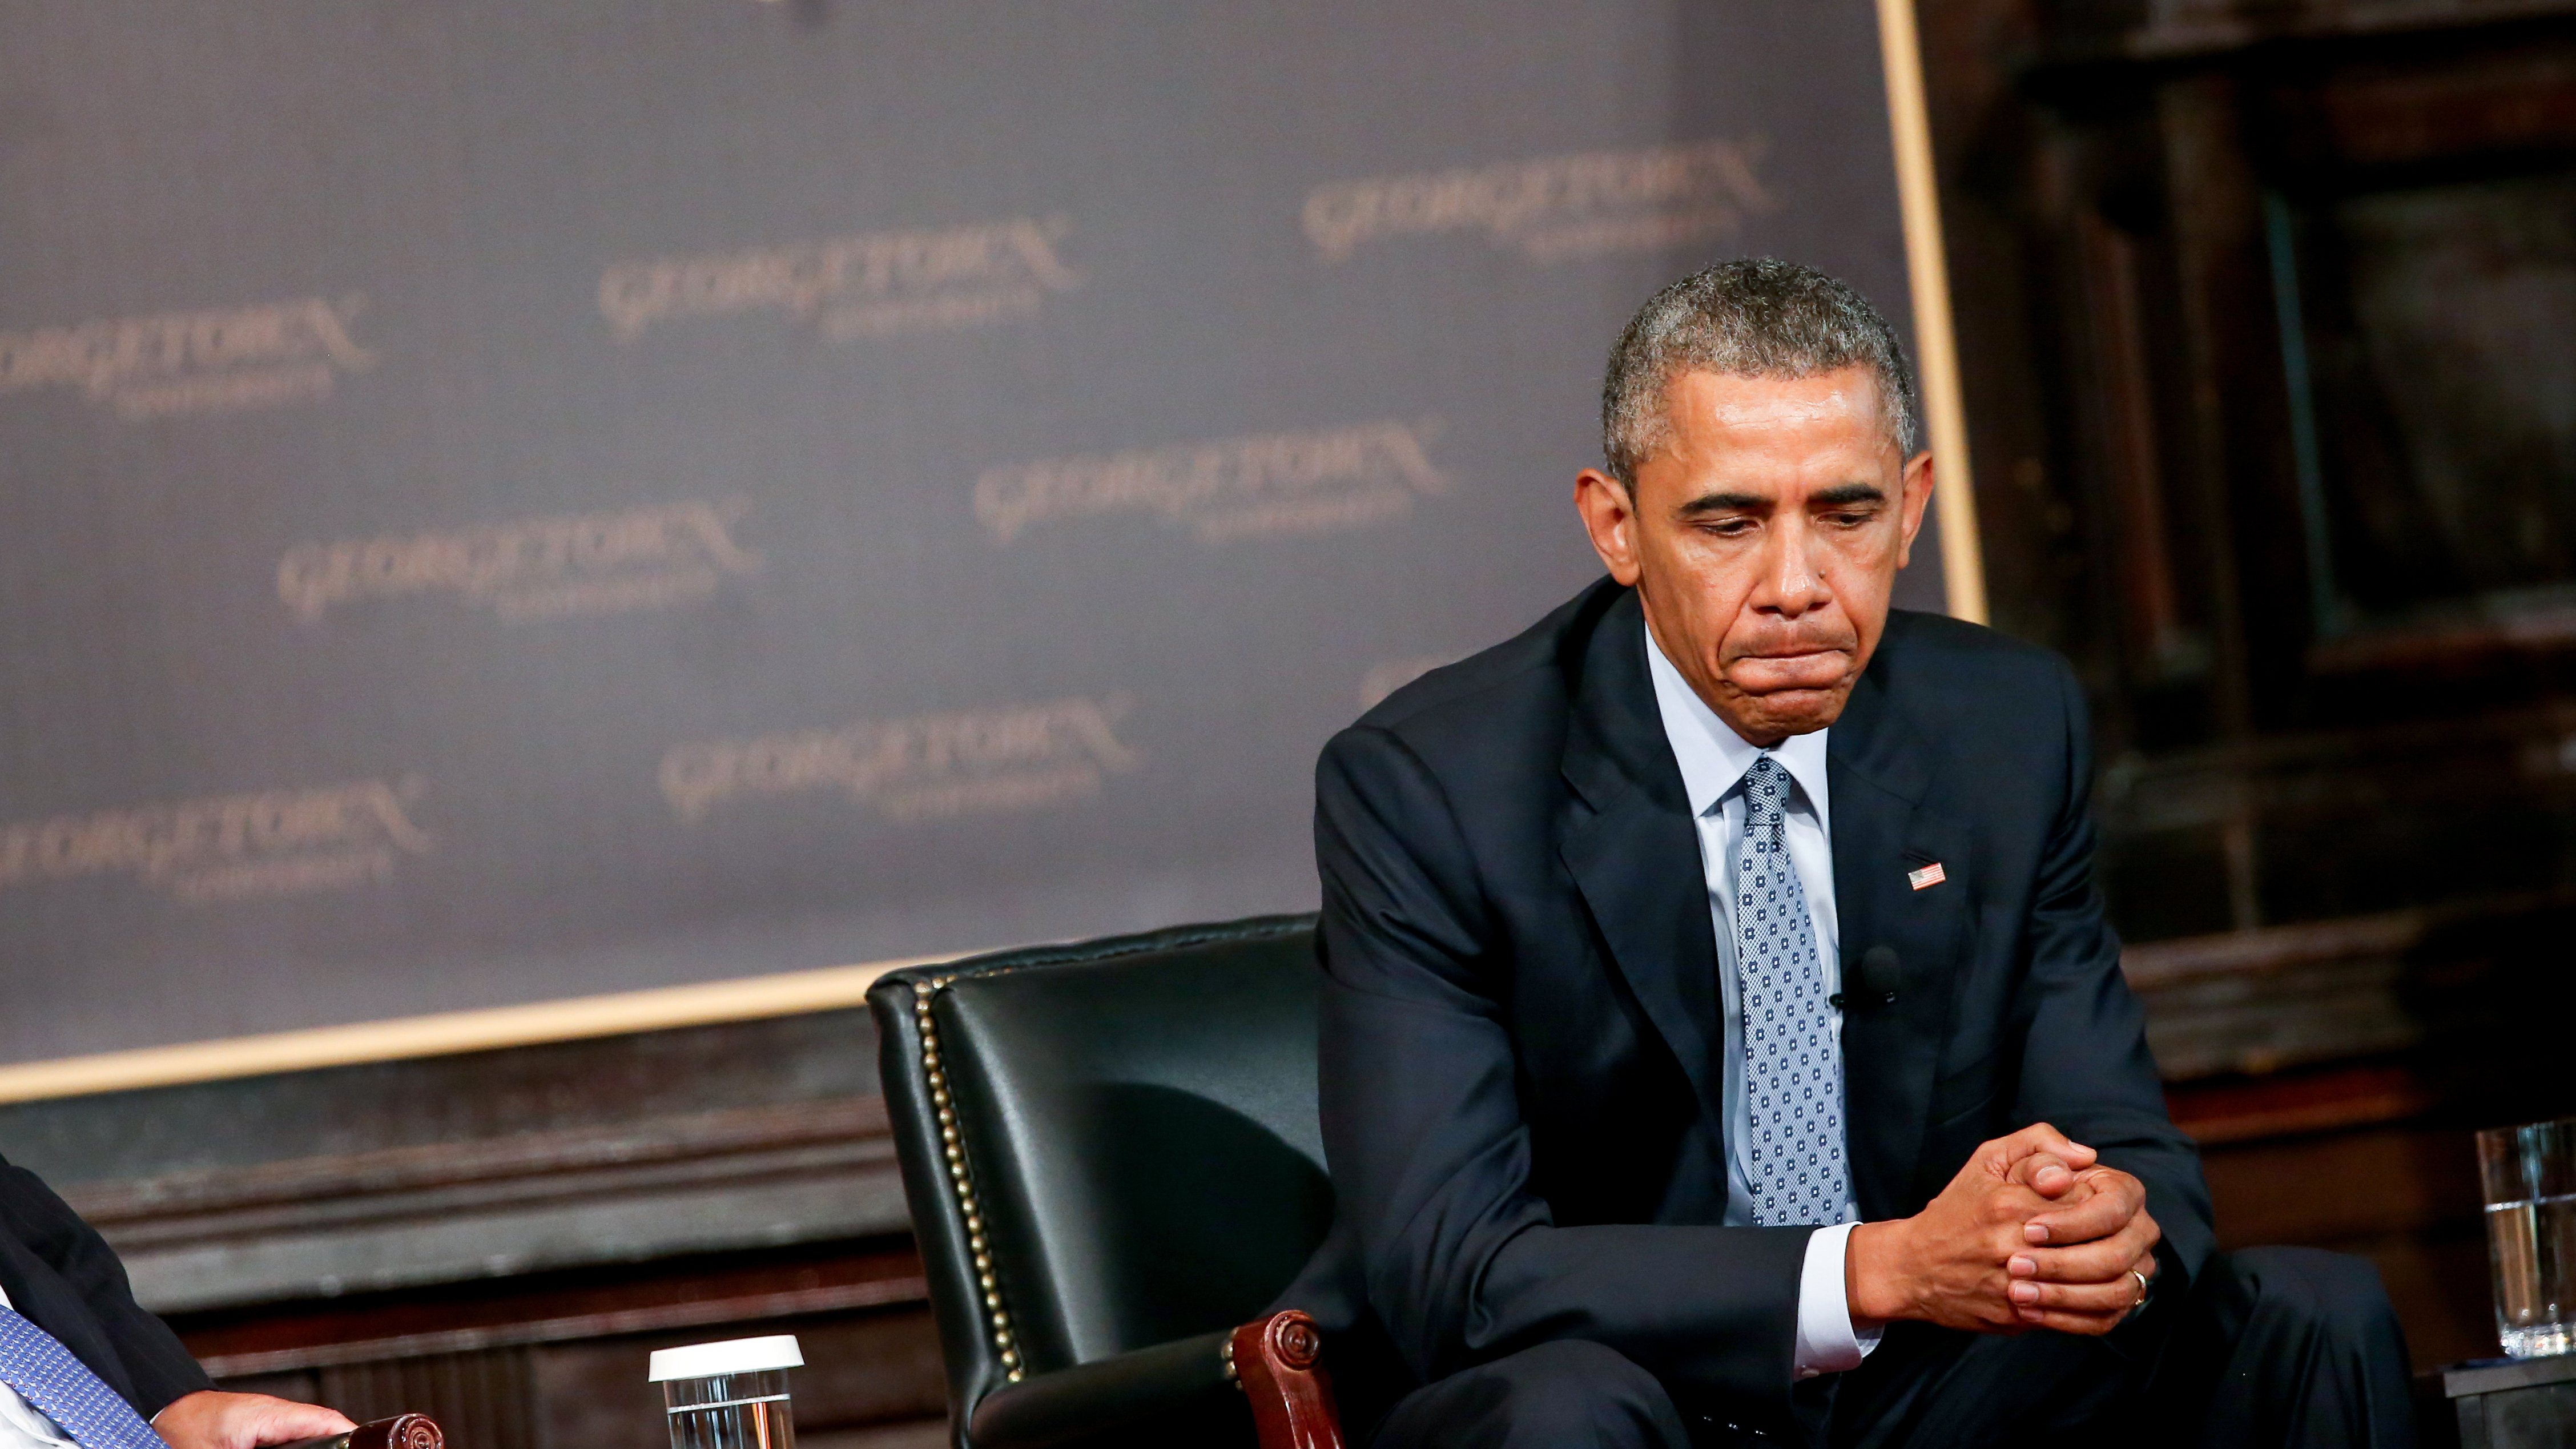 Obama: We Must 'Guard Against Cynicism' When It Comes To Poverty